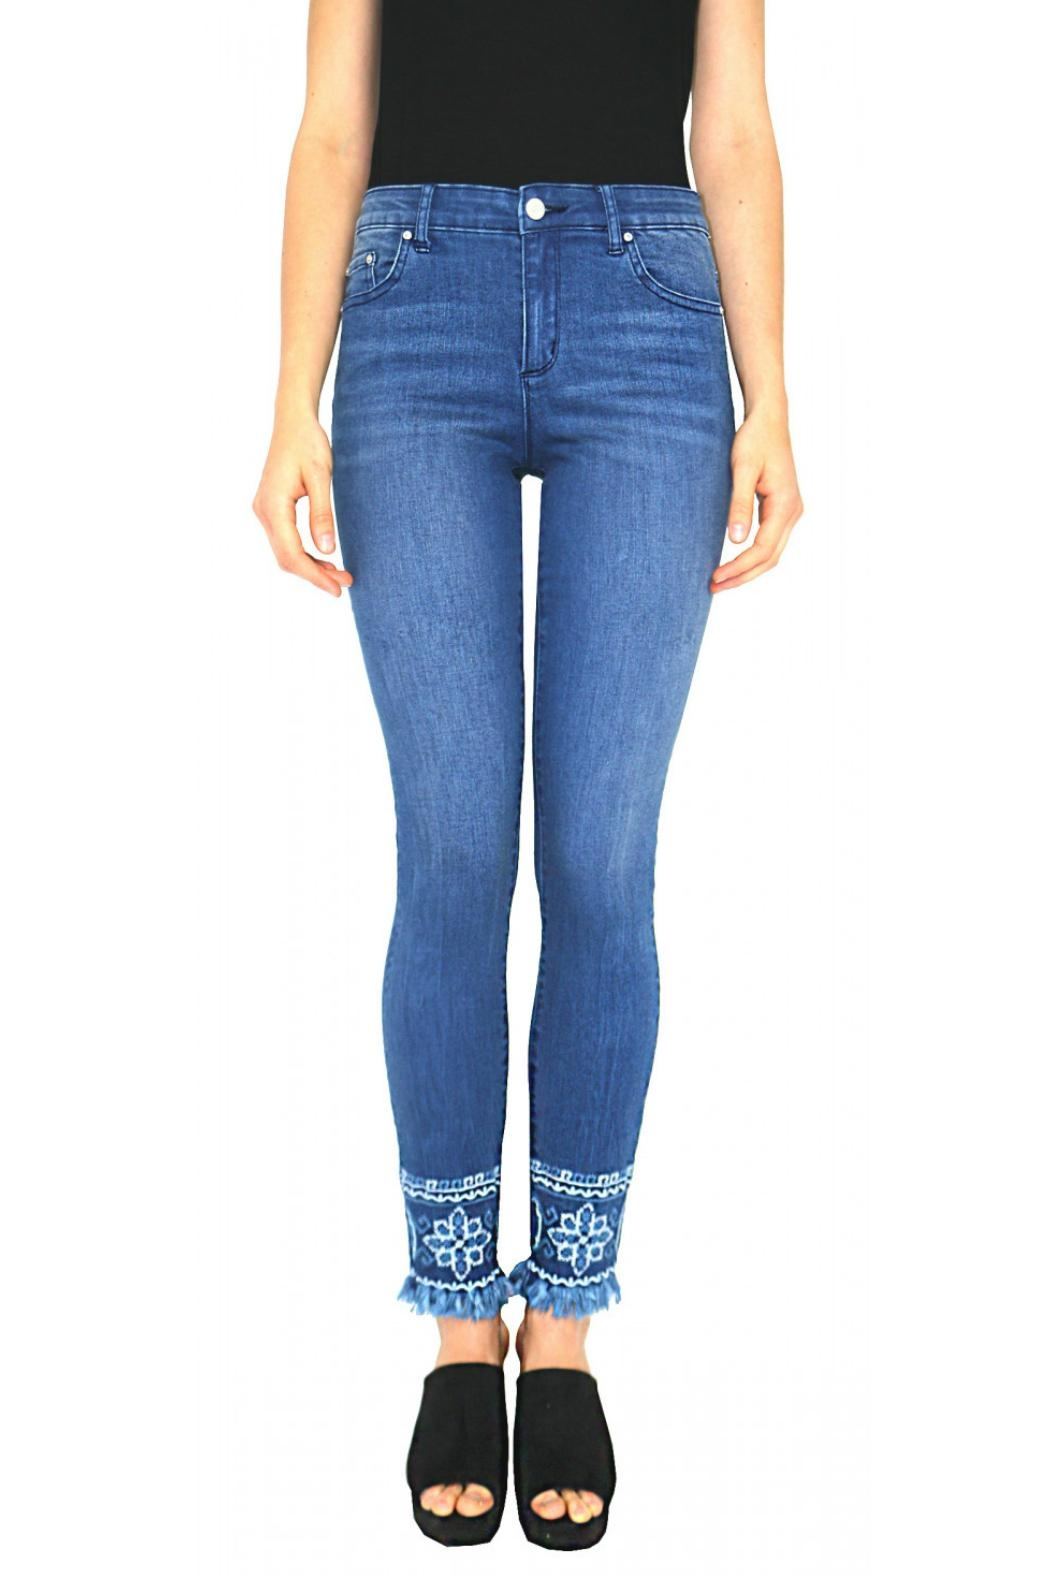 Tractr Embroidered Hem Jean - Main Image